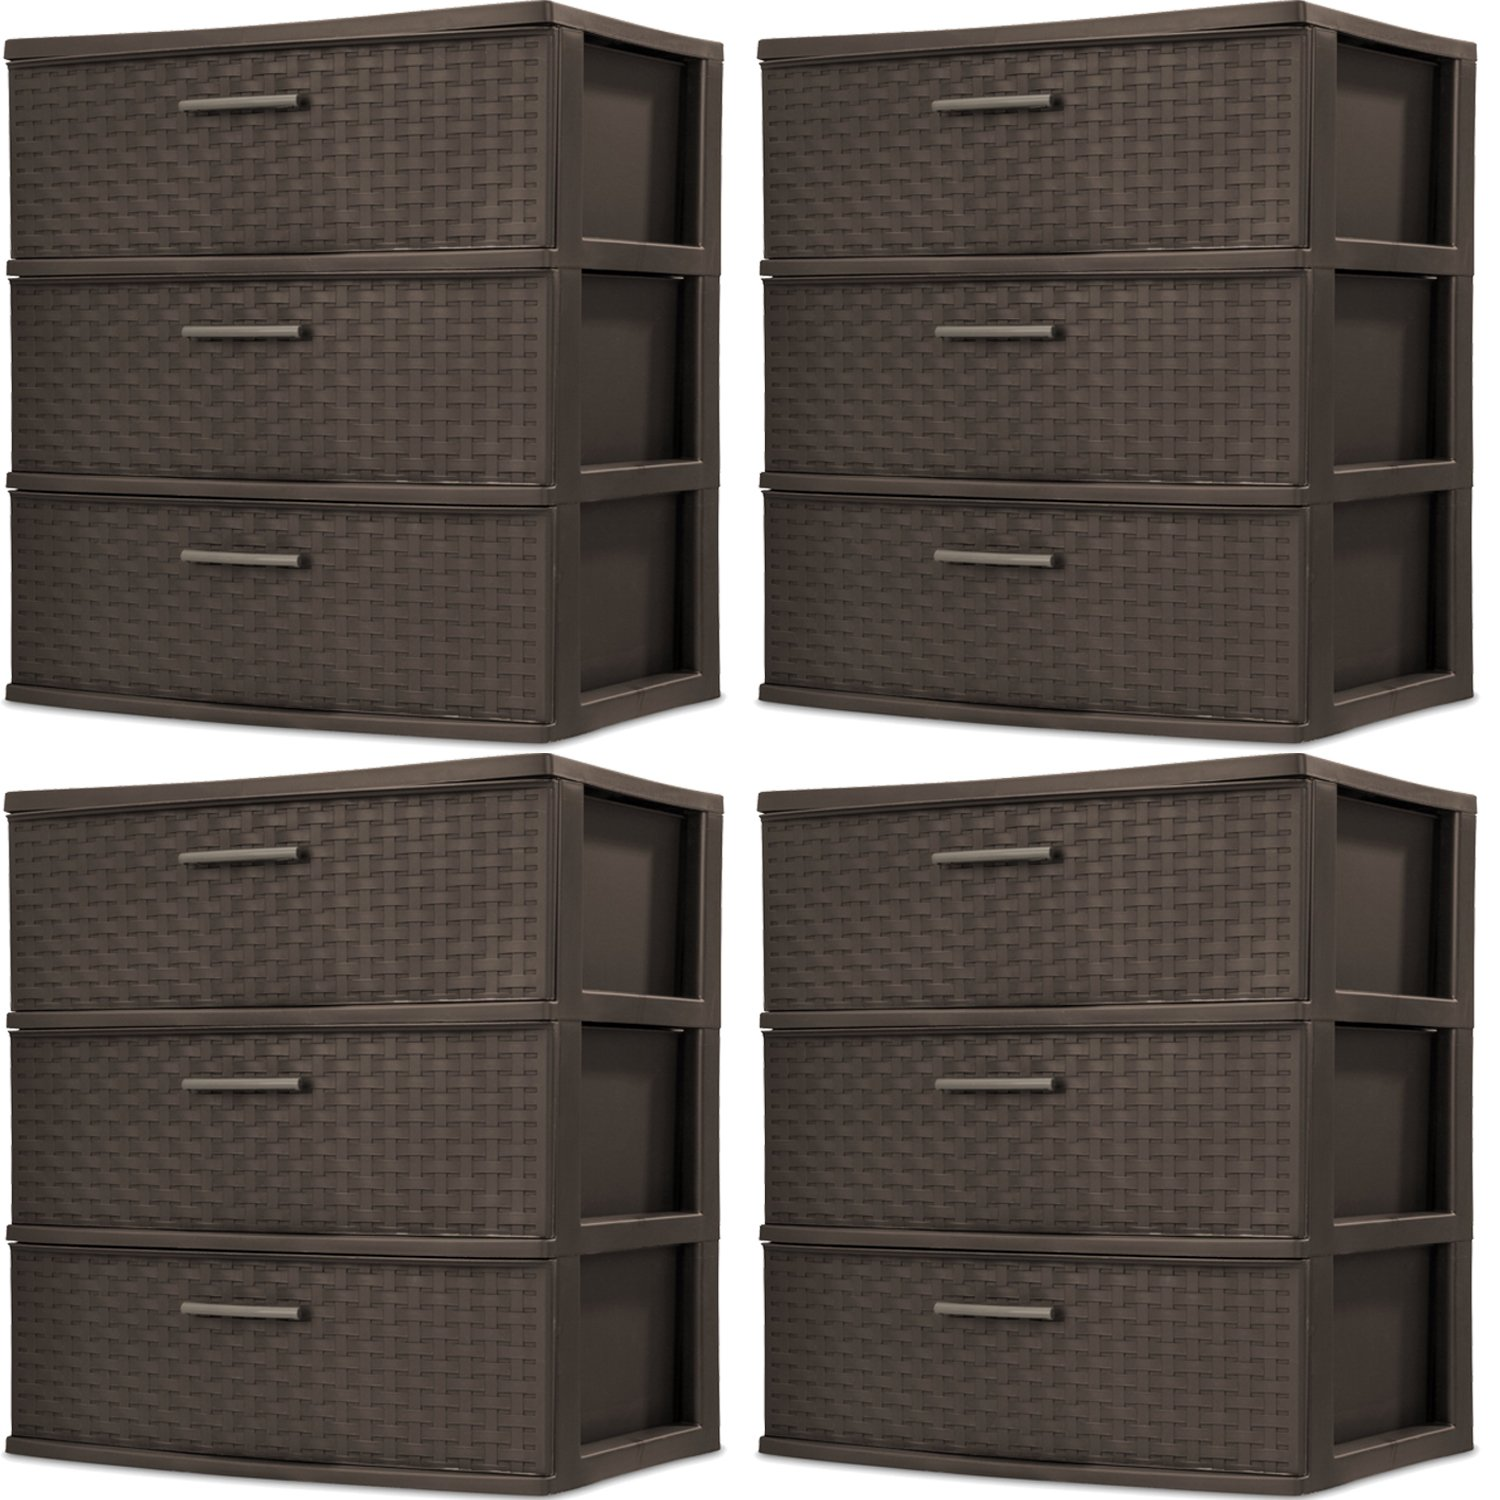 Sterilite 25306P01 3-Drawer Wide Weave Tower, Espresso Frame & Drawers w/ Driftwood Handles, 4-Pack